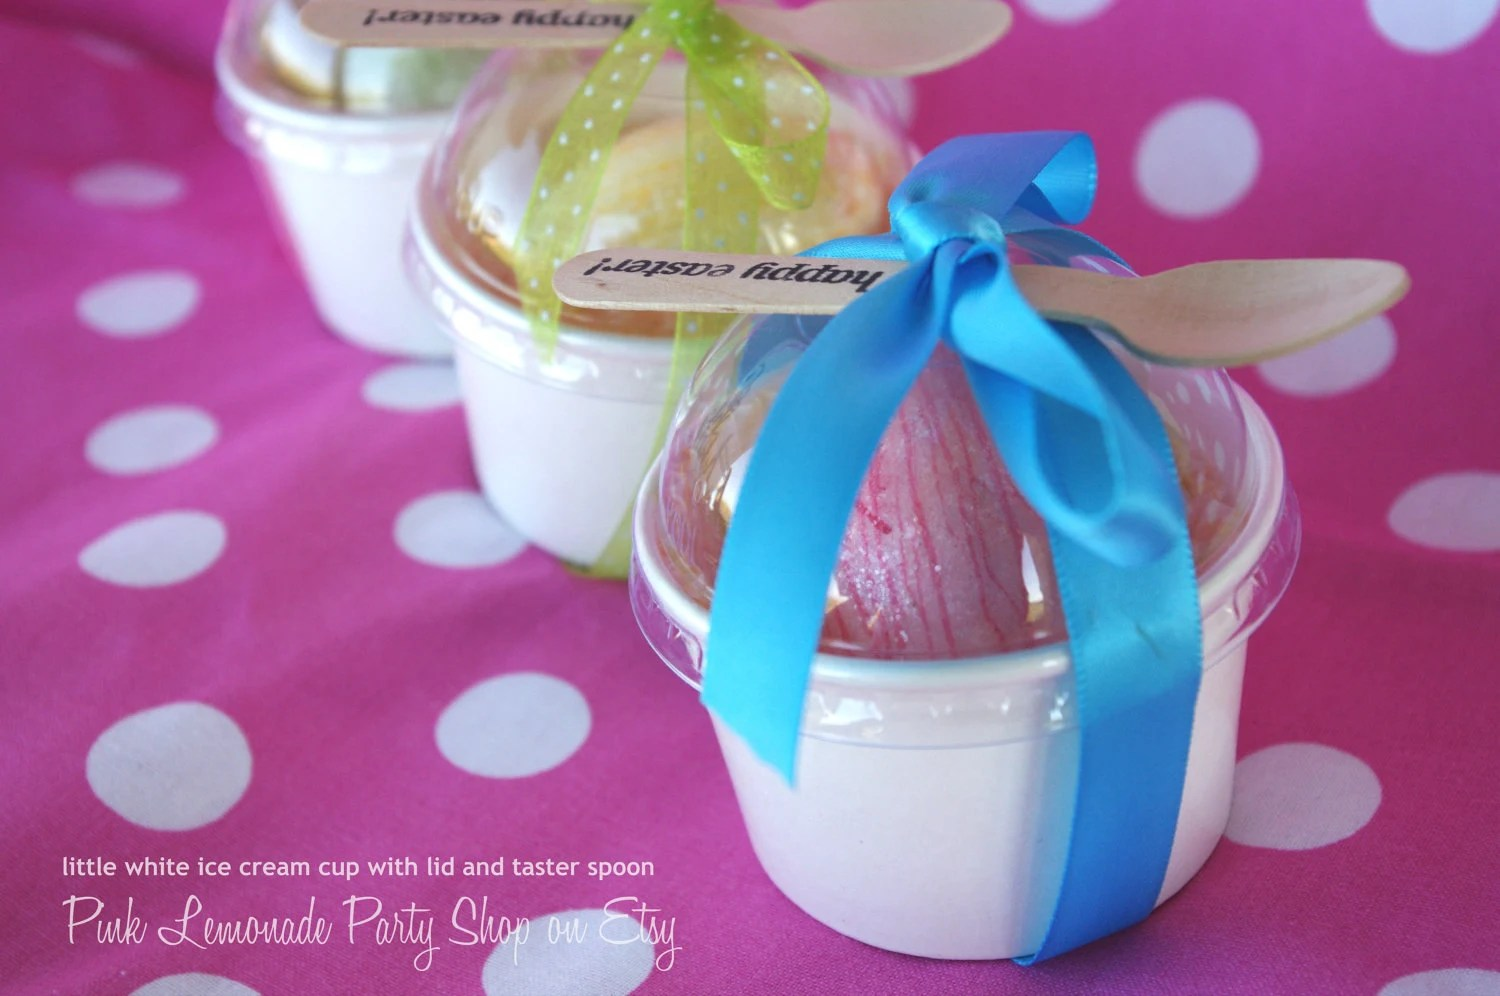 LiTTLe WHiTe PaPeR ICe CReaM CUPS-4oz with Diy printables CLeaR DoMe LiDS and wood taster spoons-Ice Cream-Showers-Weddings-10ct